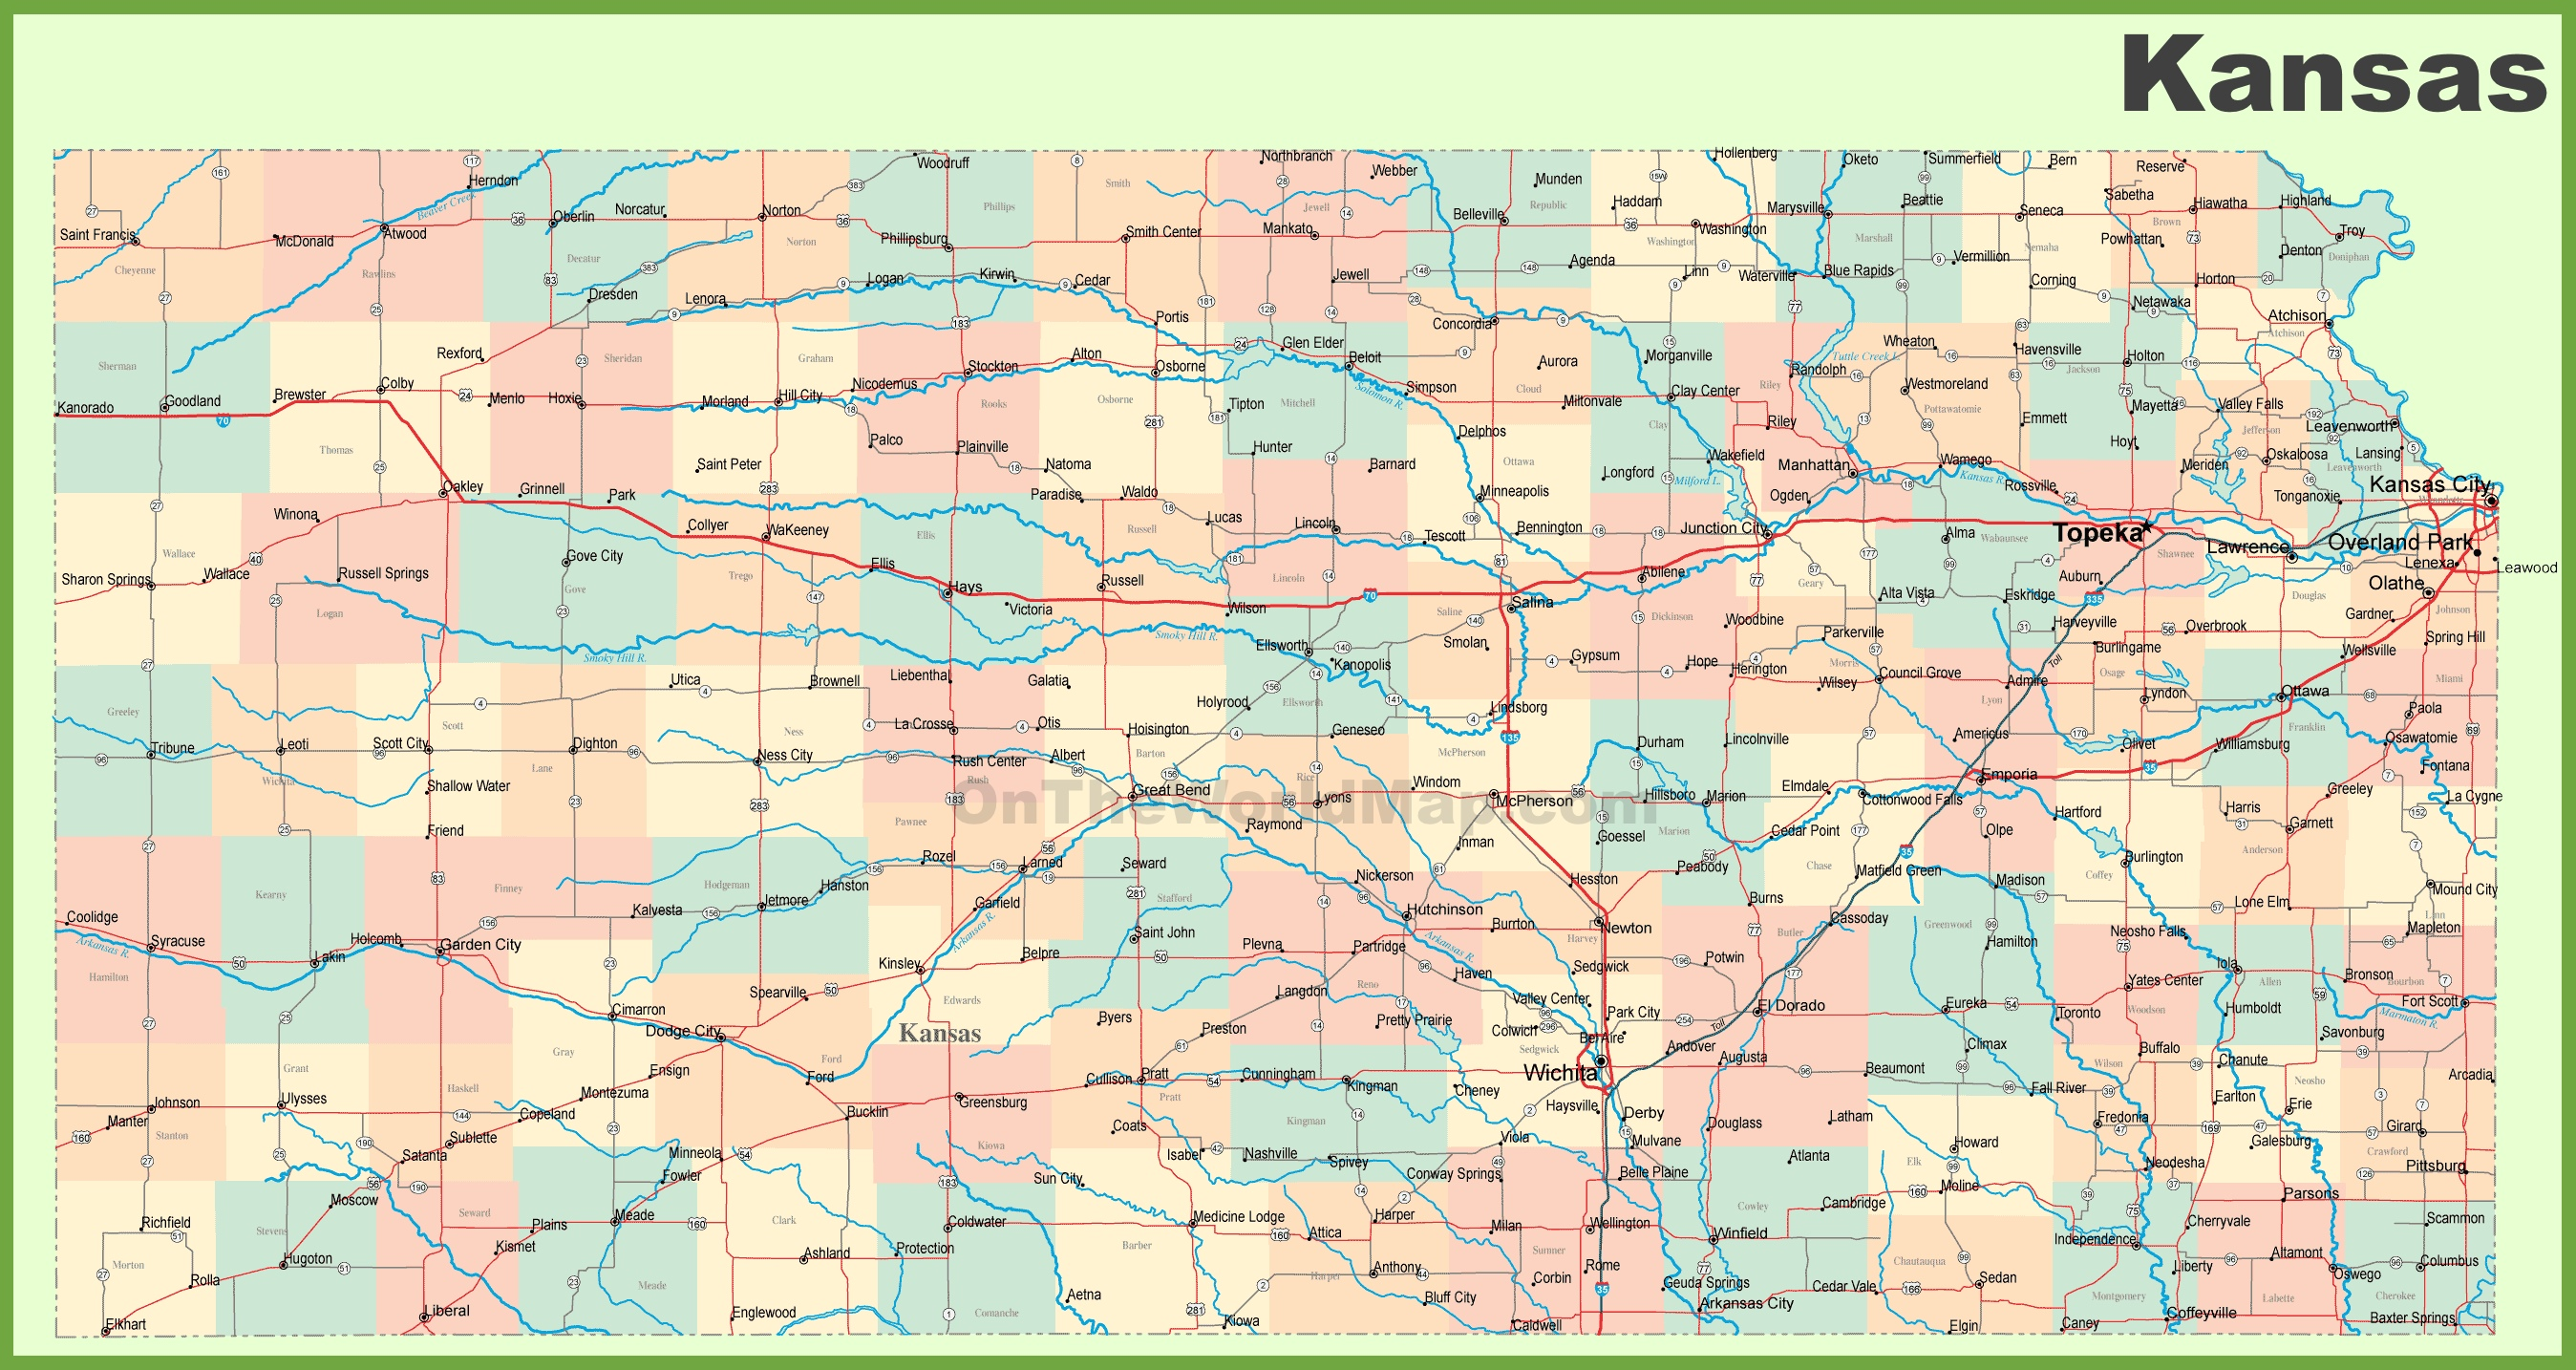 Kansas State Maps USA Maps Of Kansas KS - Map of kansas